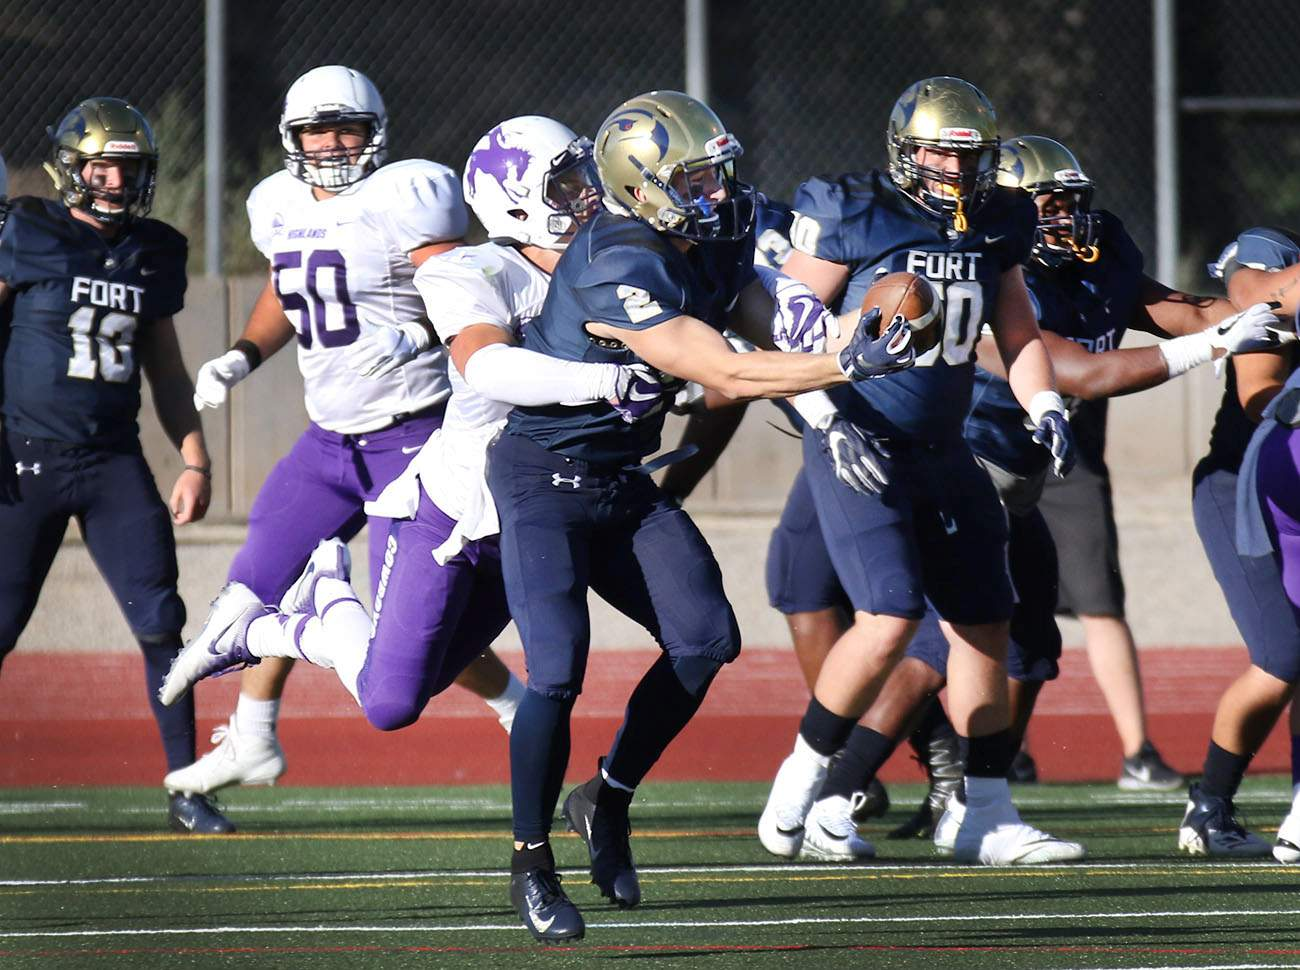 New Mexico Highlands >> Fort Lewis College Skyhawks Shot Down In Football Opener